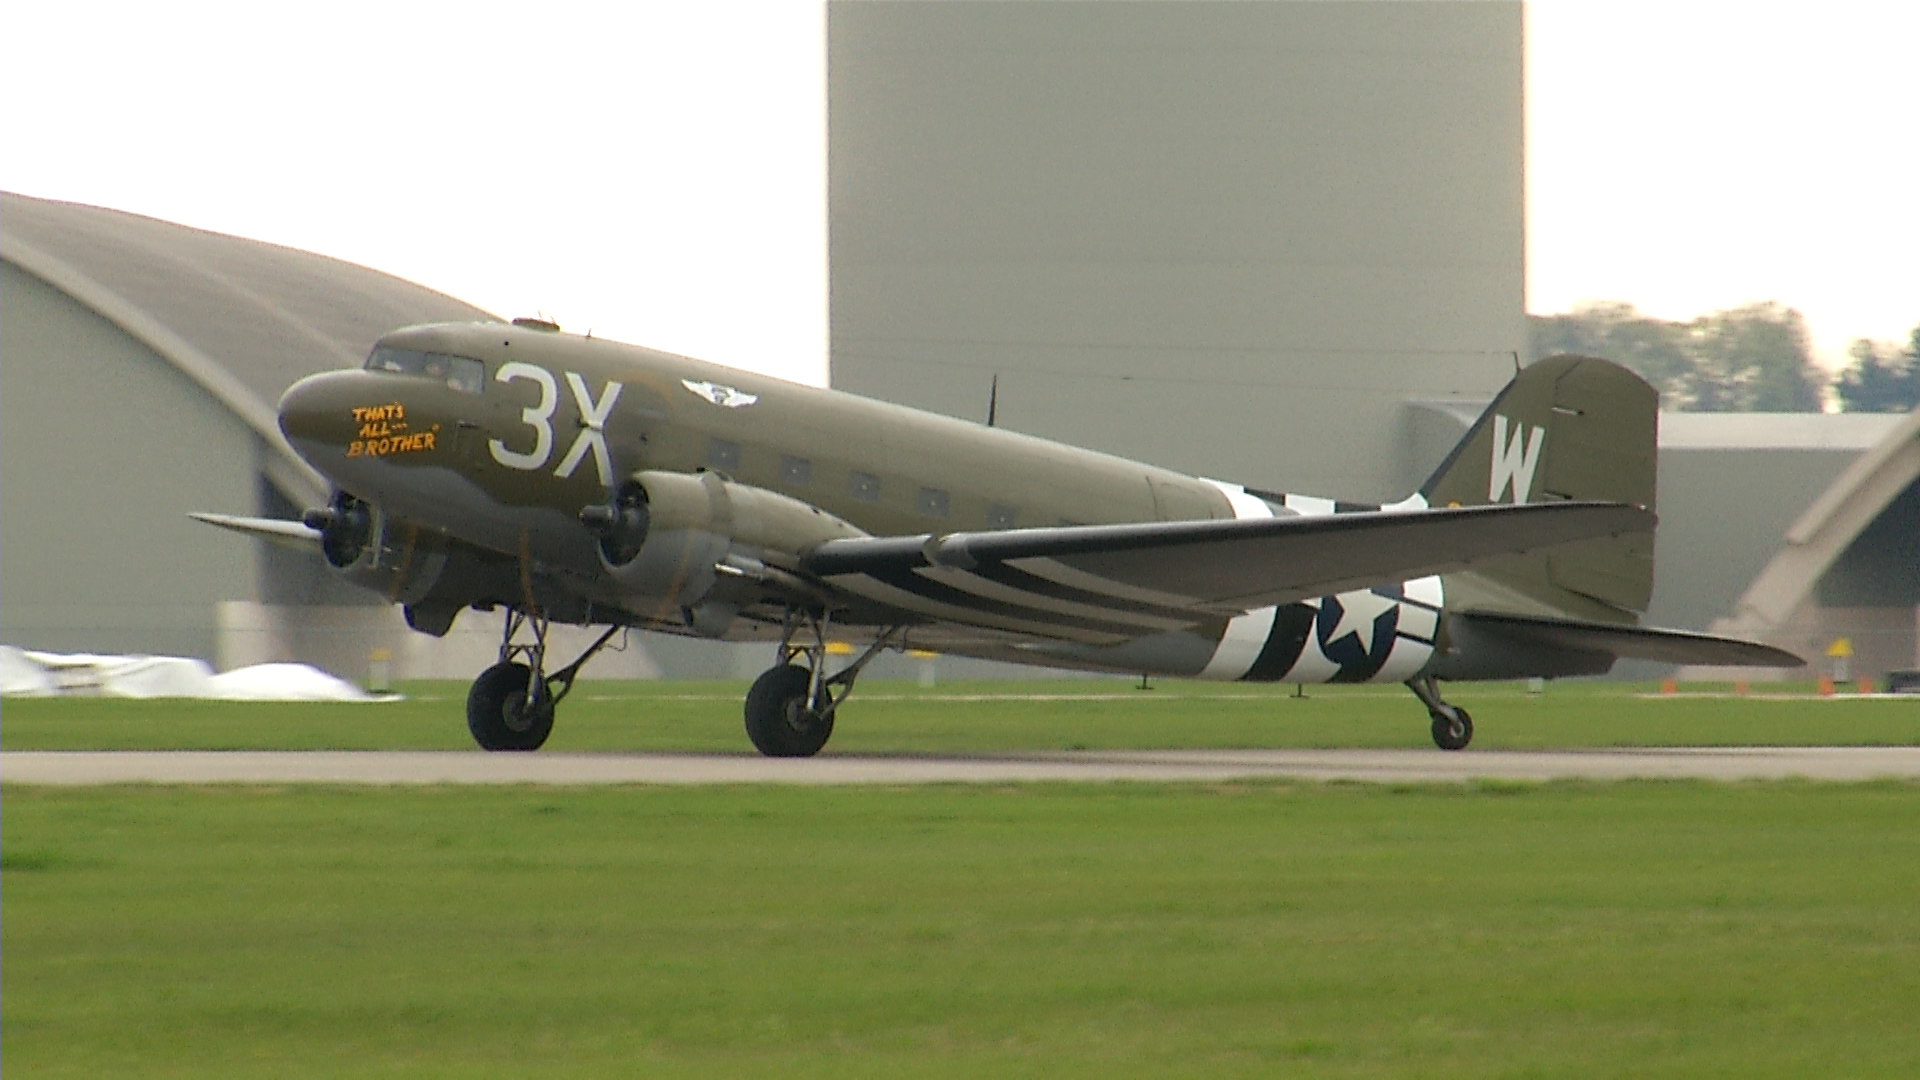 WWII C47 aircraft